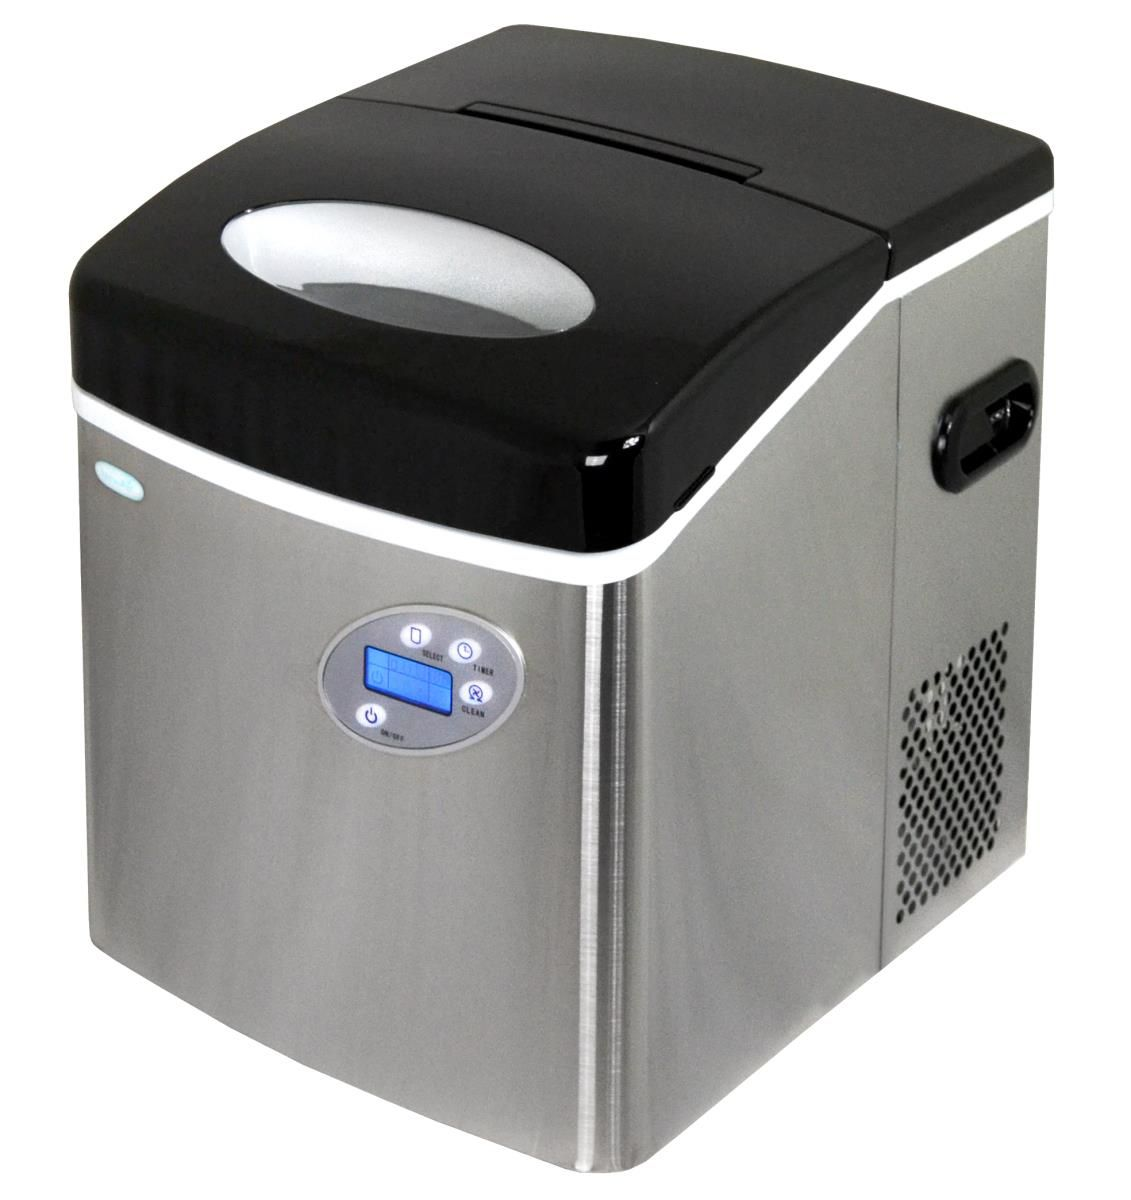 Countertop Ice Maker 50 Lbs Of Ice A Day 3 Ice Sizes